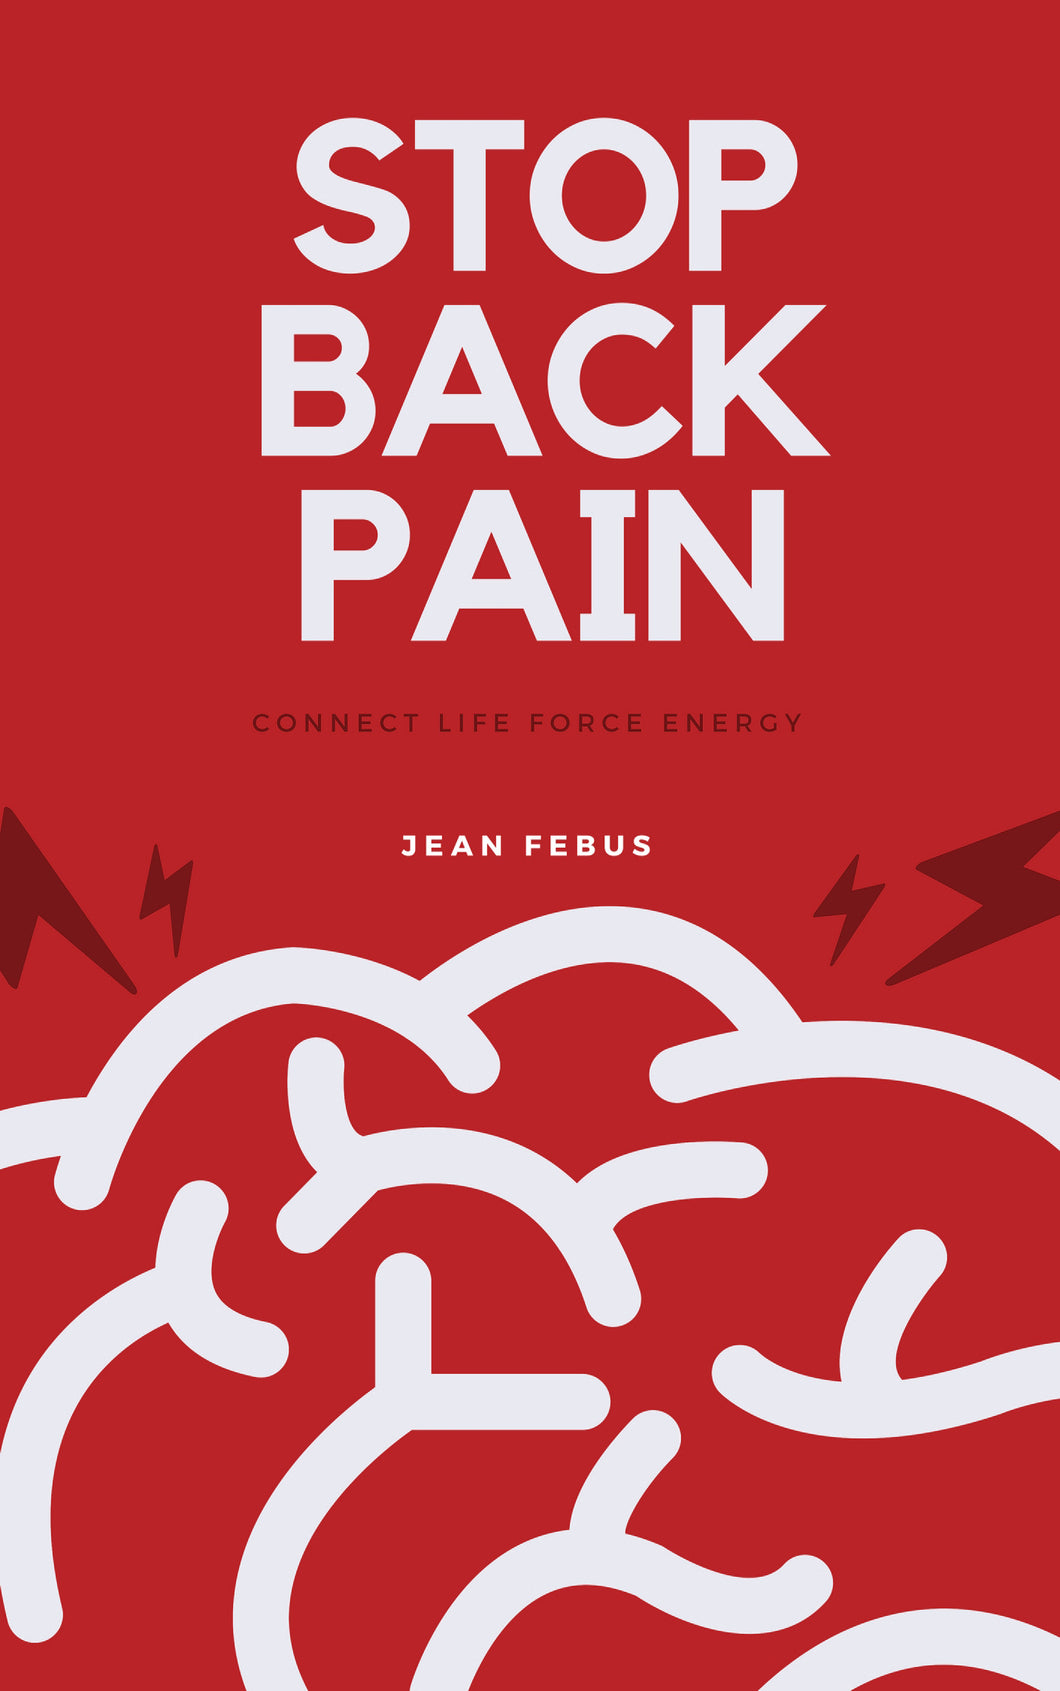 STOP BACK PAIN JEAN FEBUS BOOK GUIDE